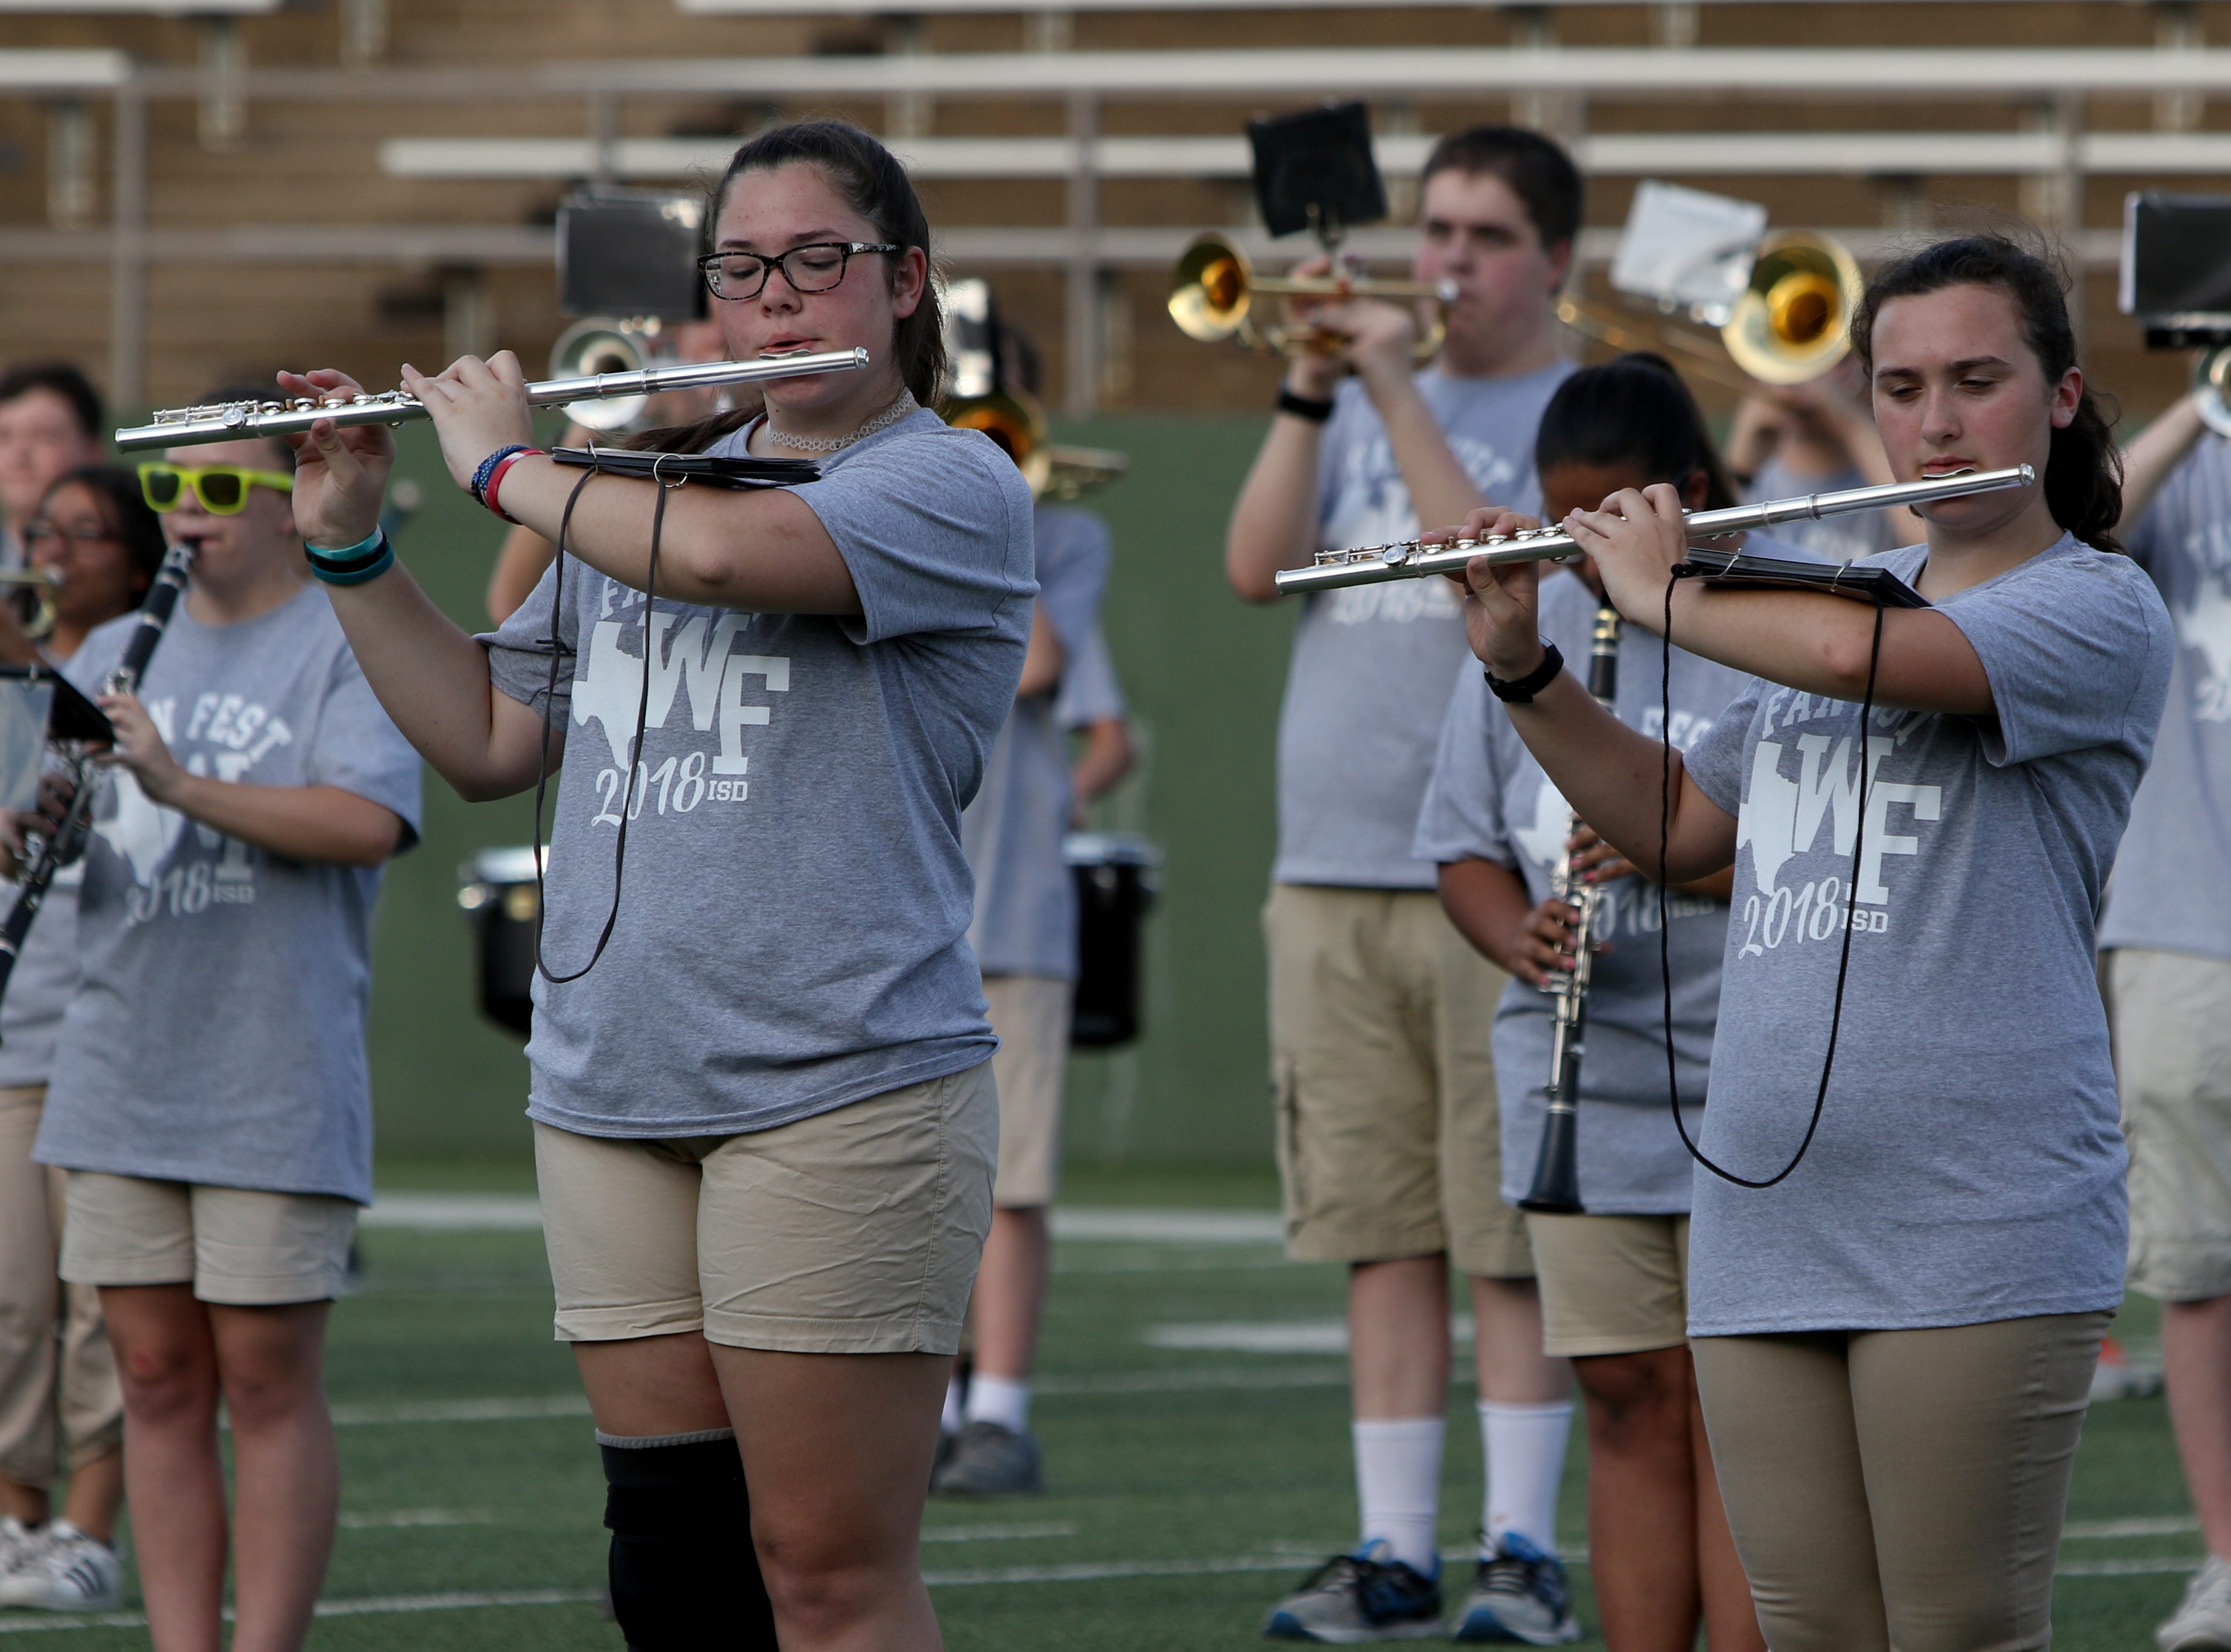 The combined Hirschi, Rider and Wichita Falls High School bands perform at the WFISD Fan Fest Tuesday, Aug. 7, 2018, at Memorial Stadium.